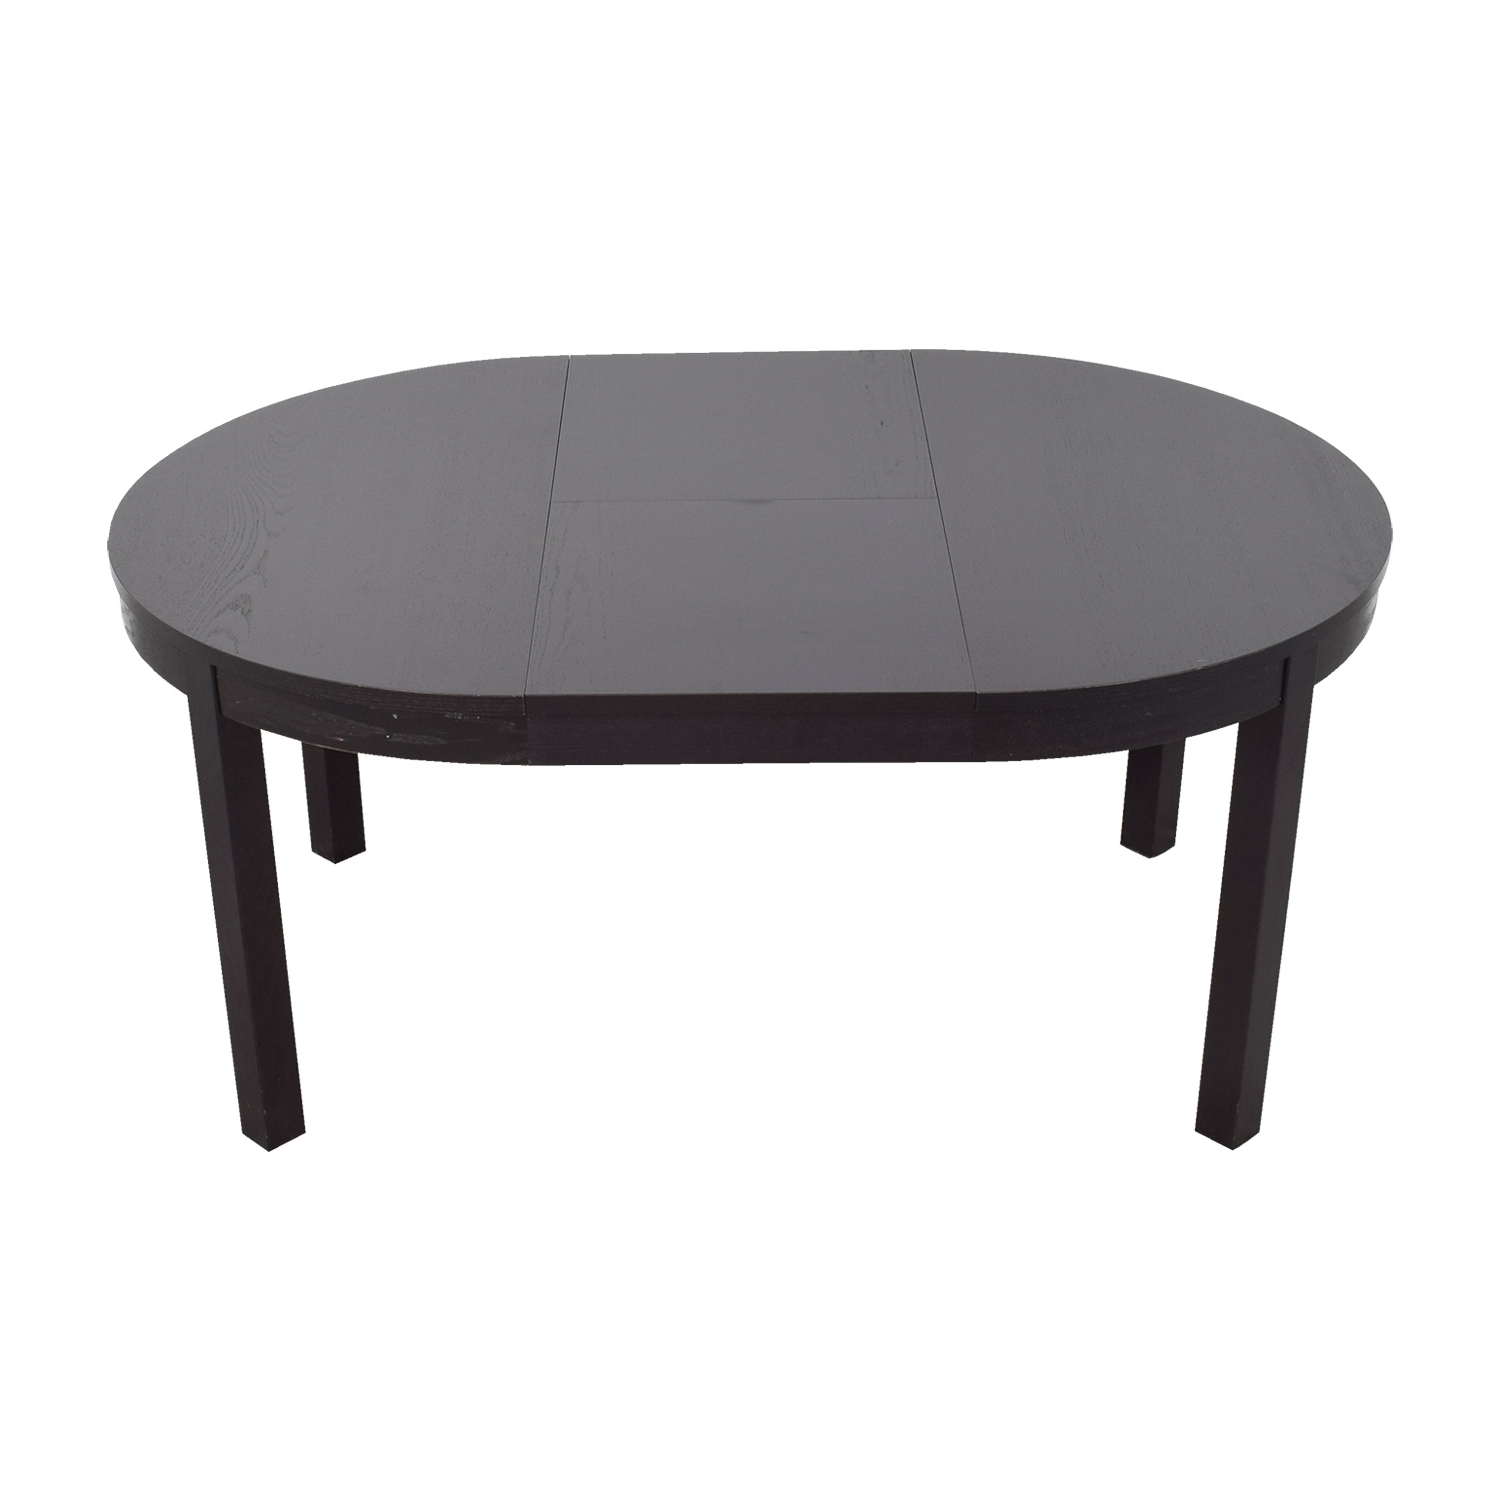 Newest Ikea Round Dining Tables Set Inside Ikea Dining Room Set Granås Table And 4 Chairs Ikea Bmorebiostat Com (View 16 of 25)